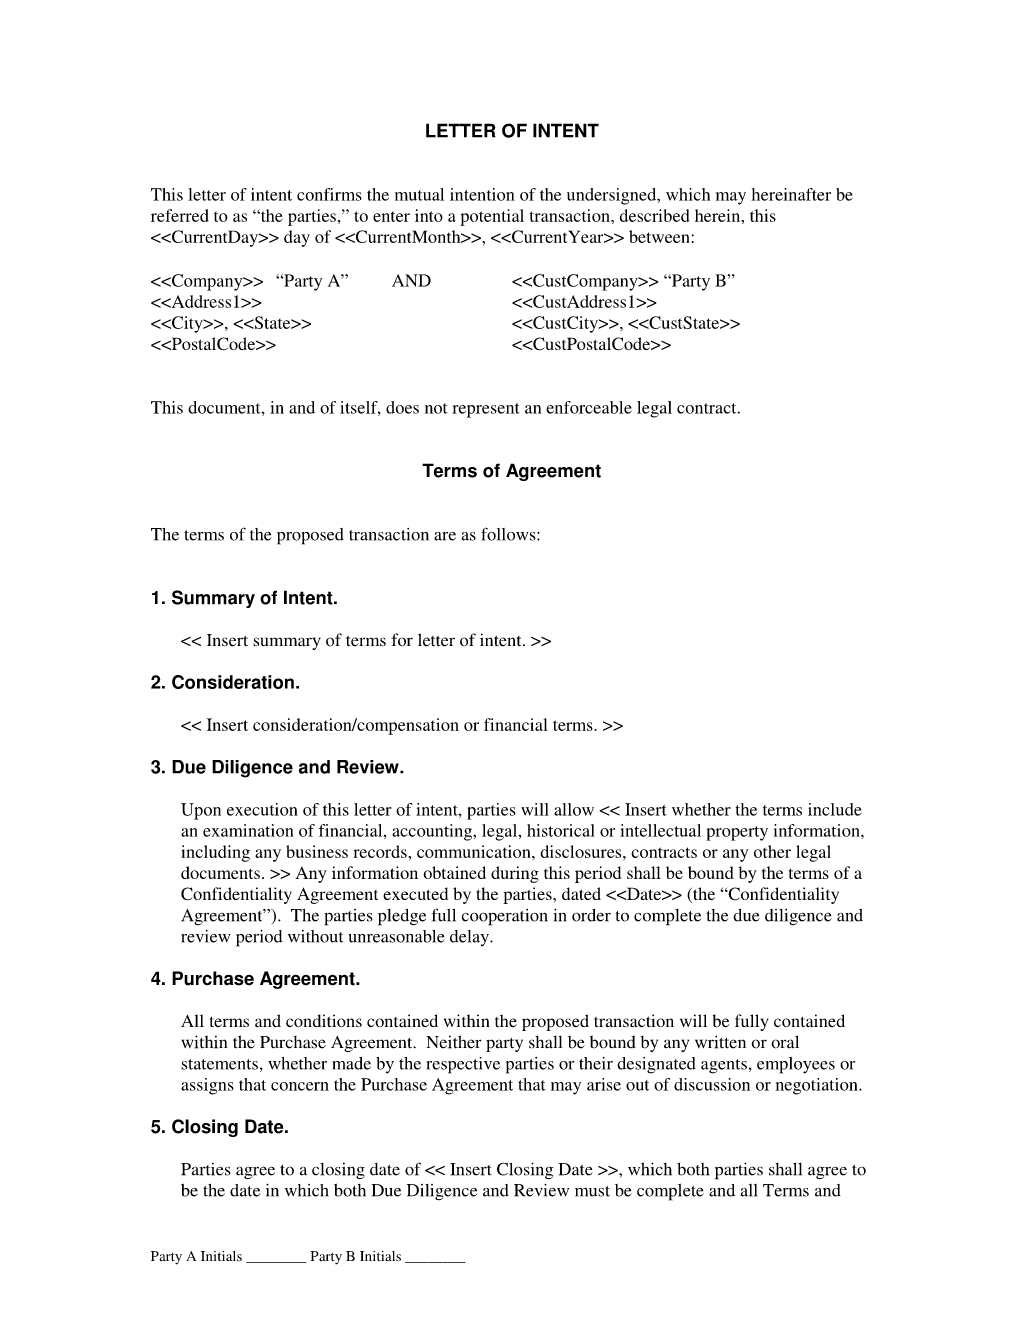 subcontractor letter of intent template Collection-Letter of Intent Agreement The Letter of Intent Agreement is intended for two parties who intend to enter into a contract This Letter of Intent is not a 20-i